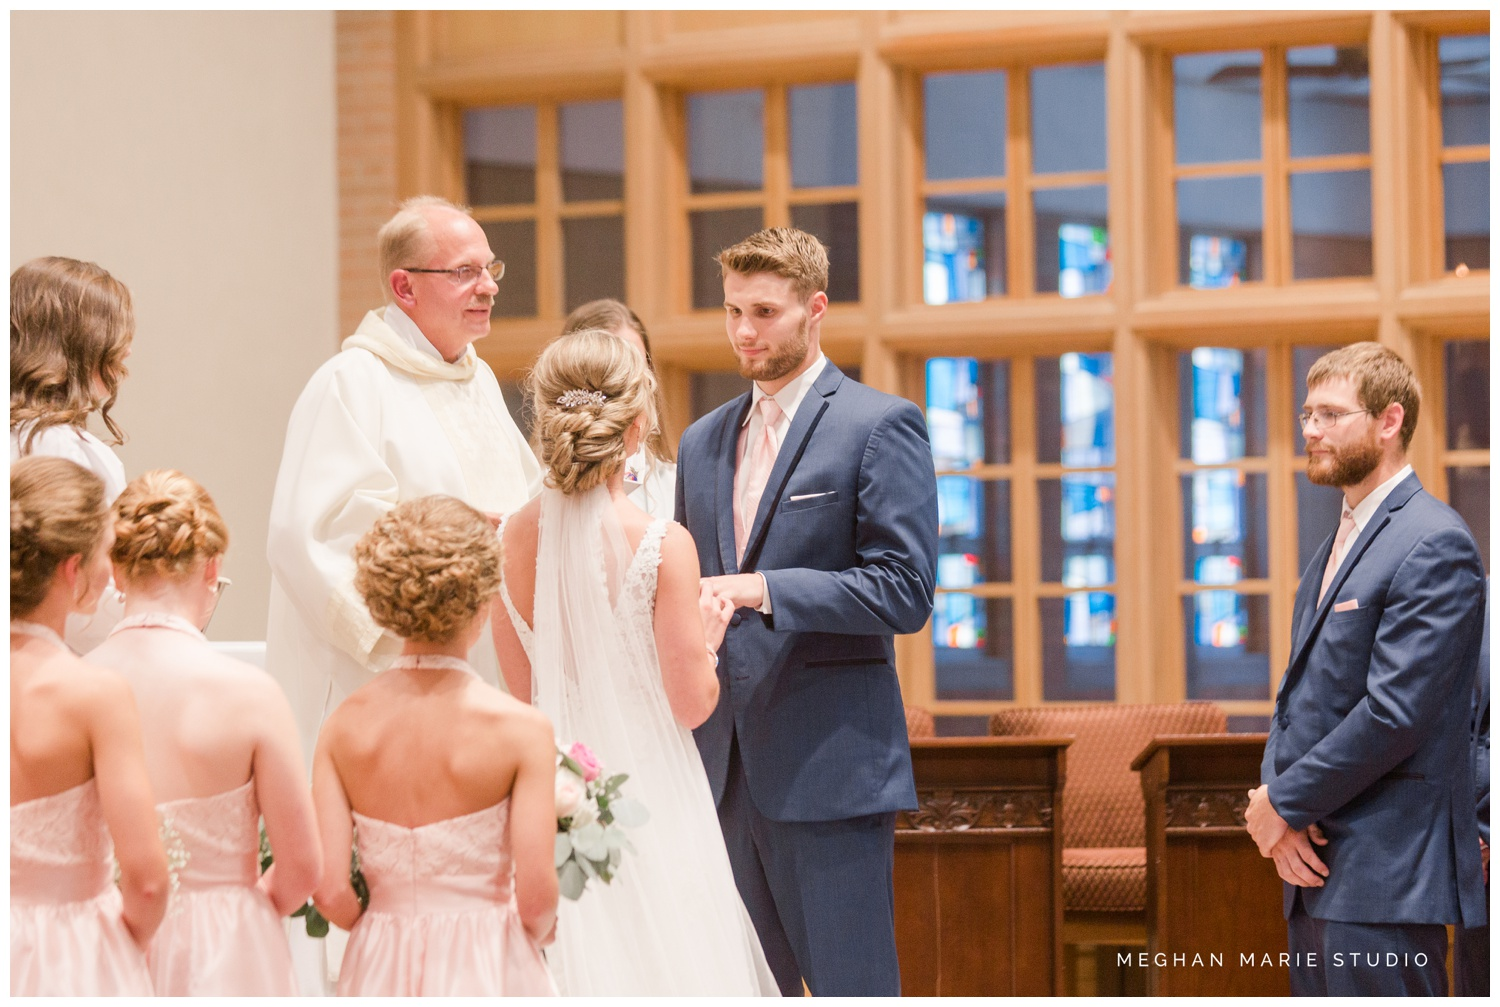 meghan marie studio ohio wedding kyle ahrens msu michigan state basketball spartans navy blush rustic barn soft warm bright bubbles catholic church_0377.jpg